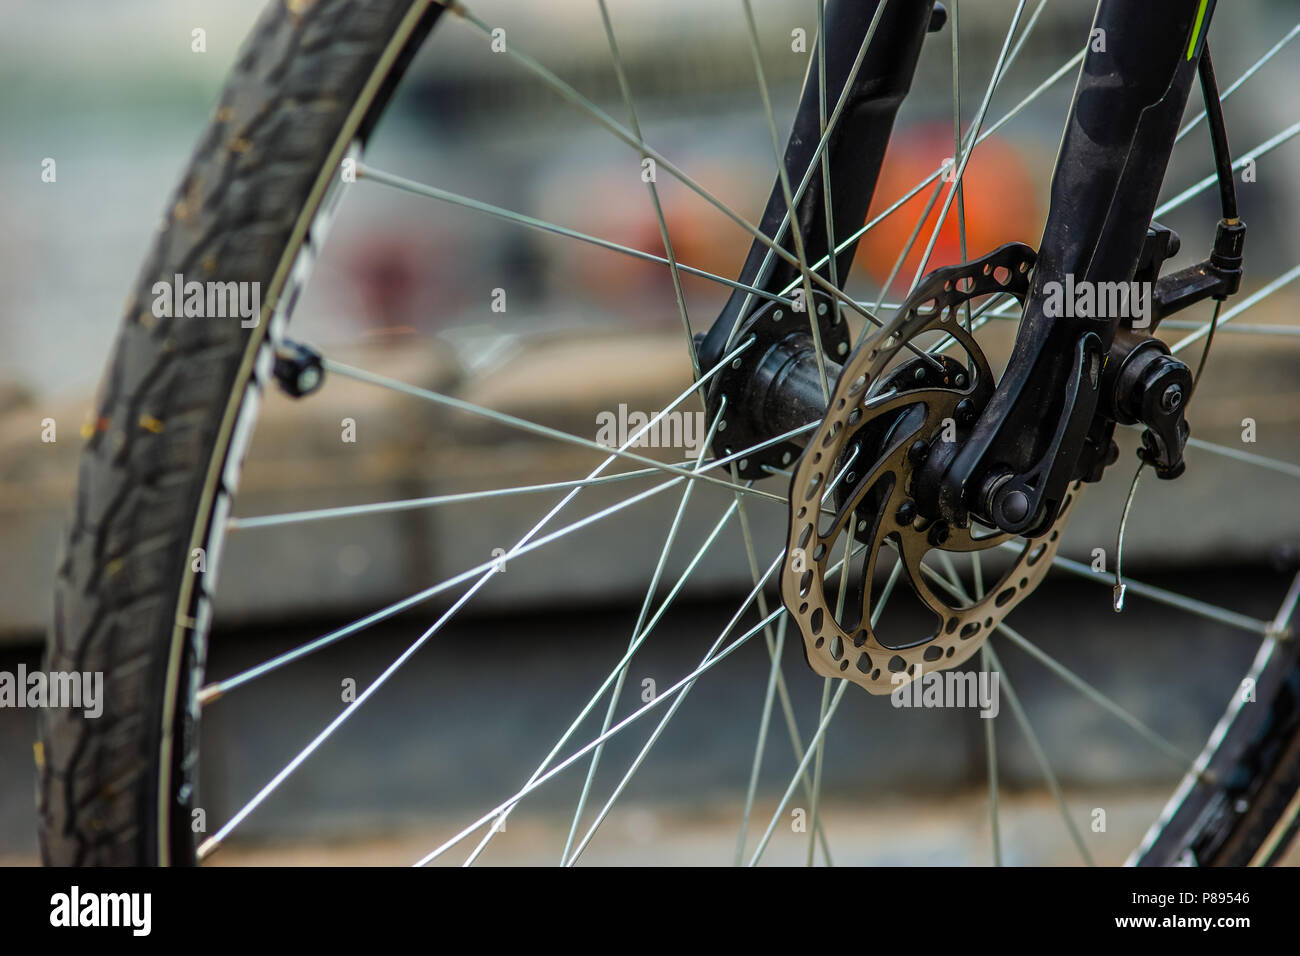 Details of a rear wheel of a modern bicycle with front brake gear. - Stock Image